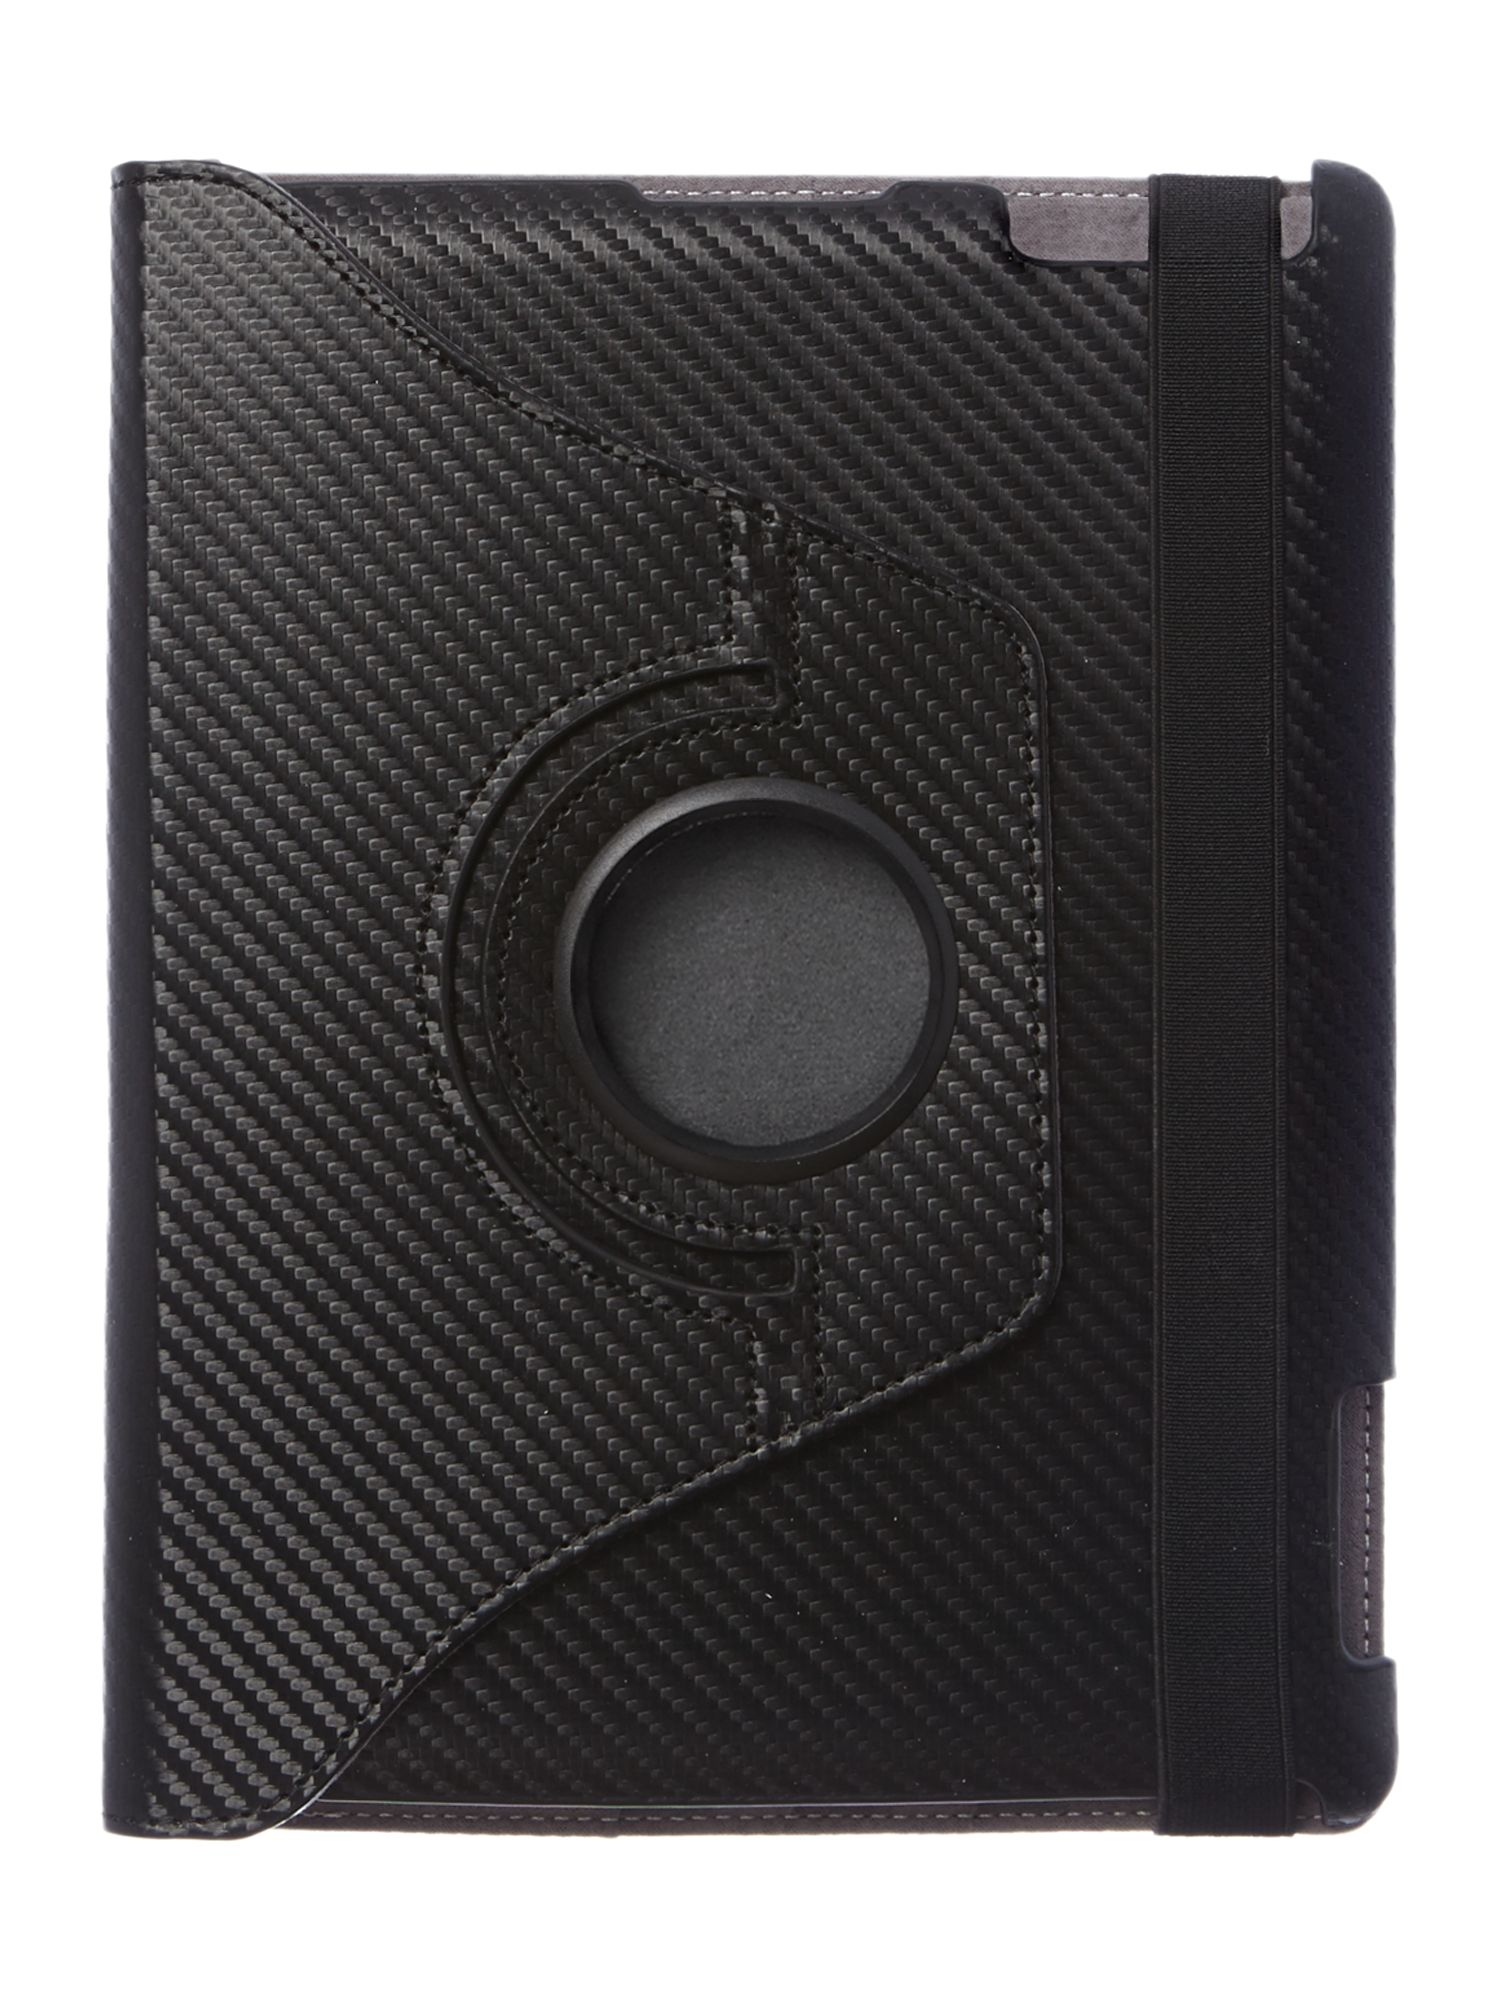 Black 360 Ipad case